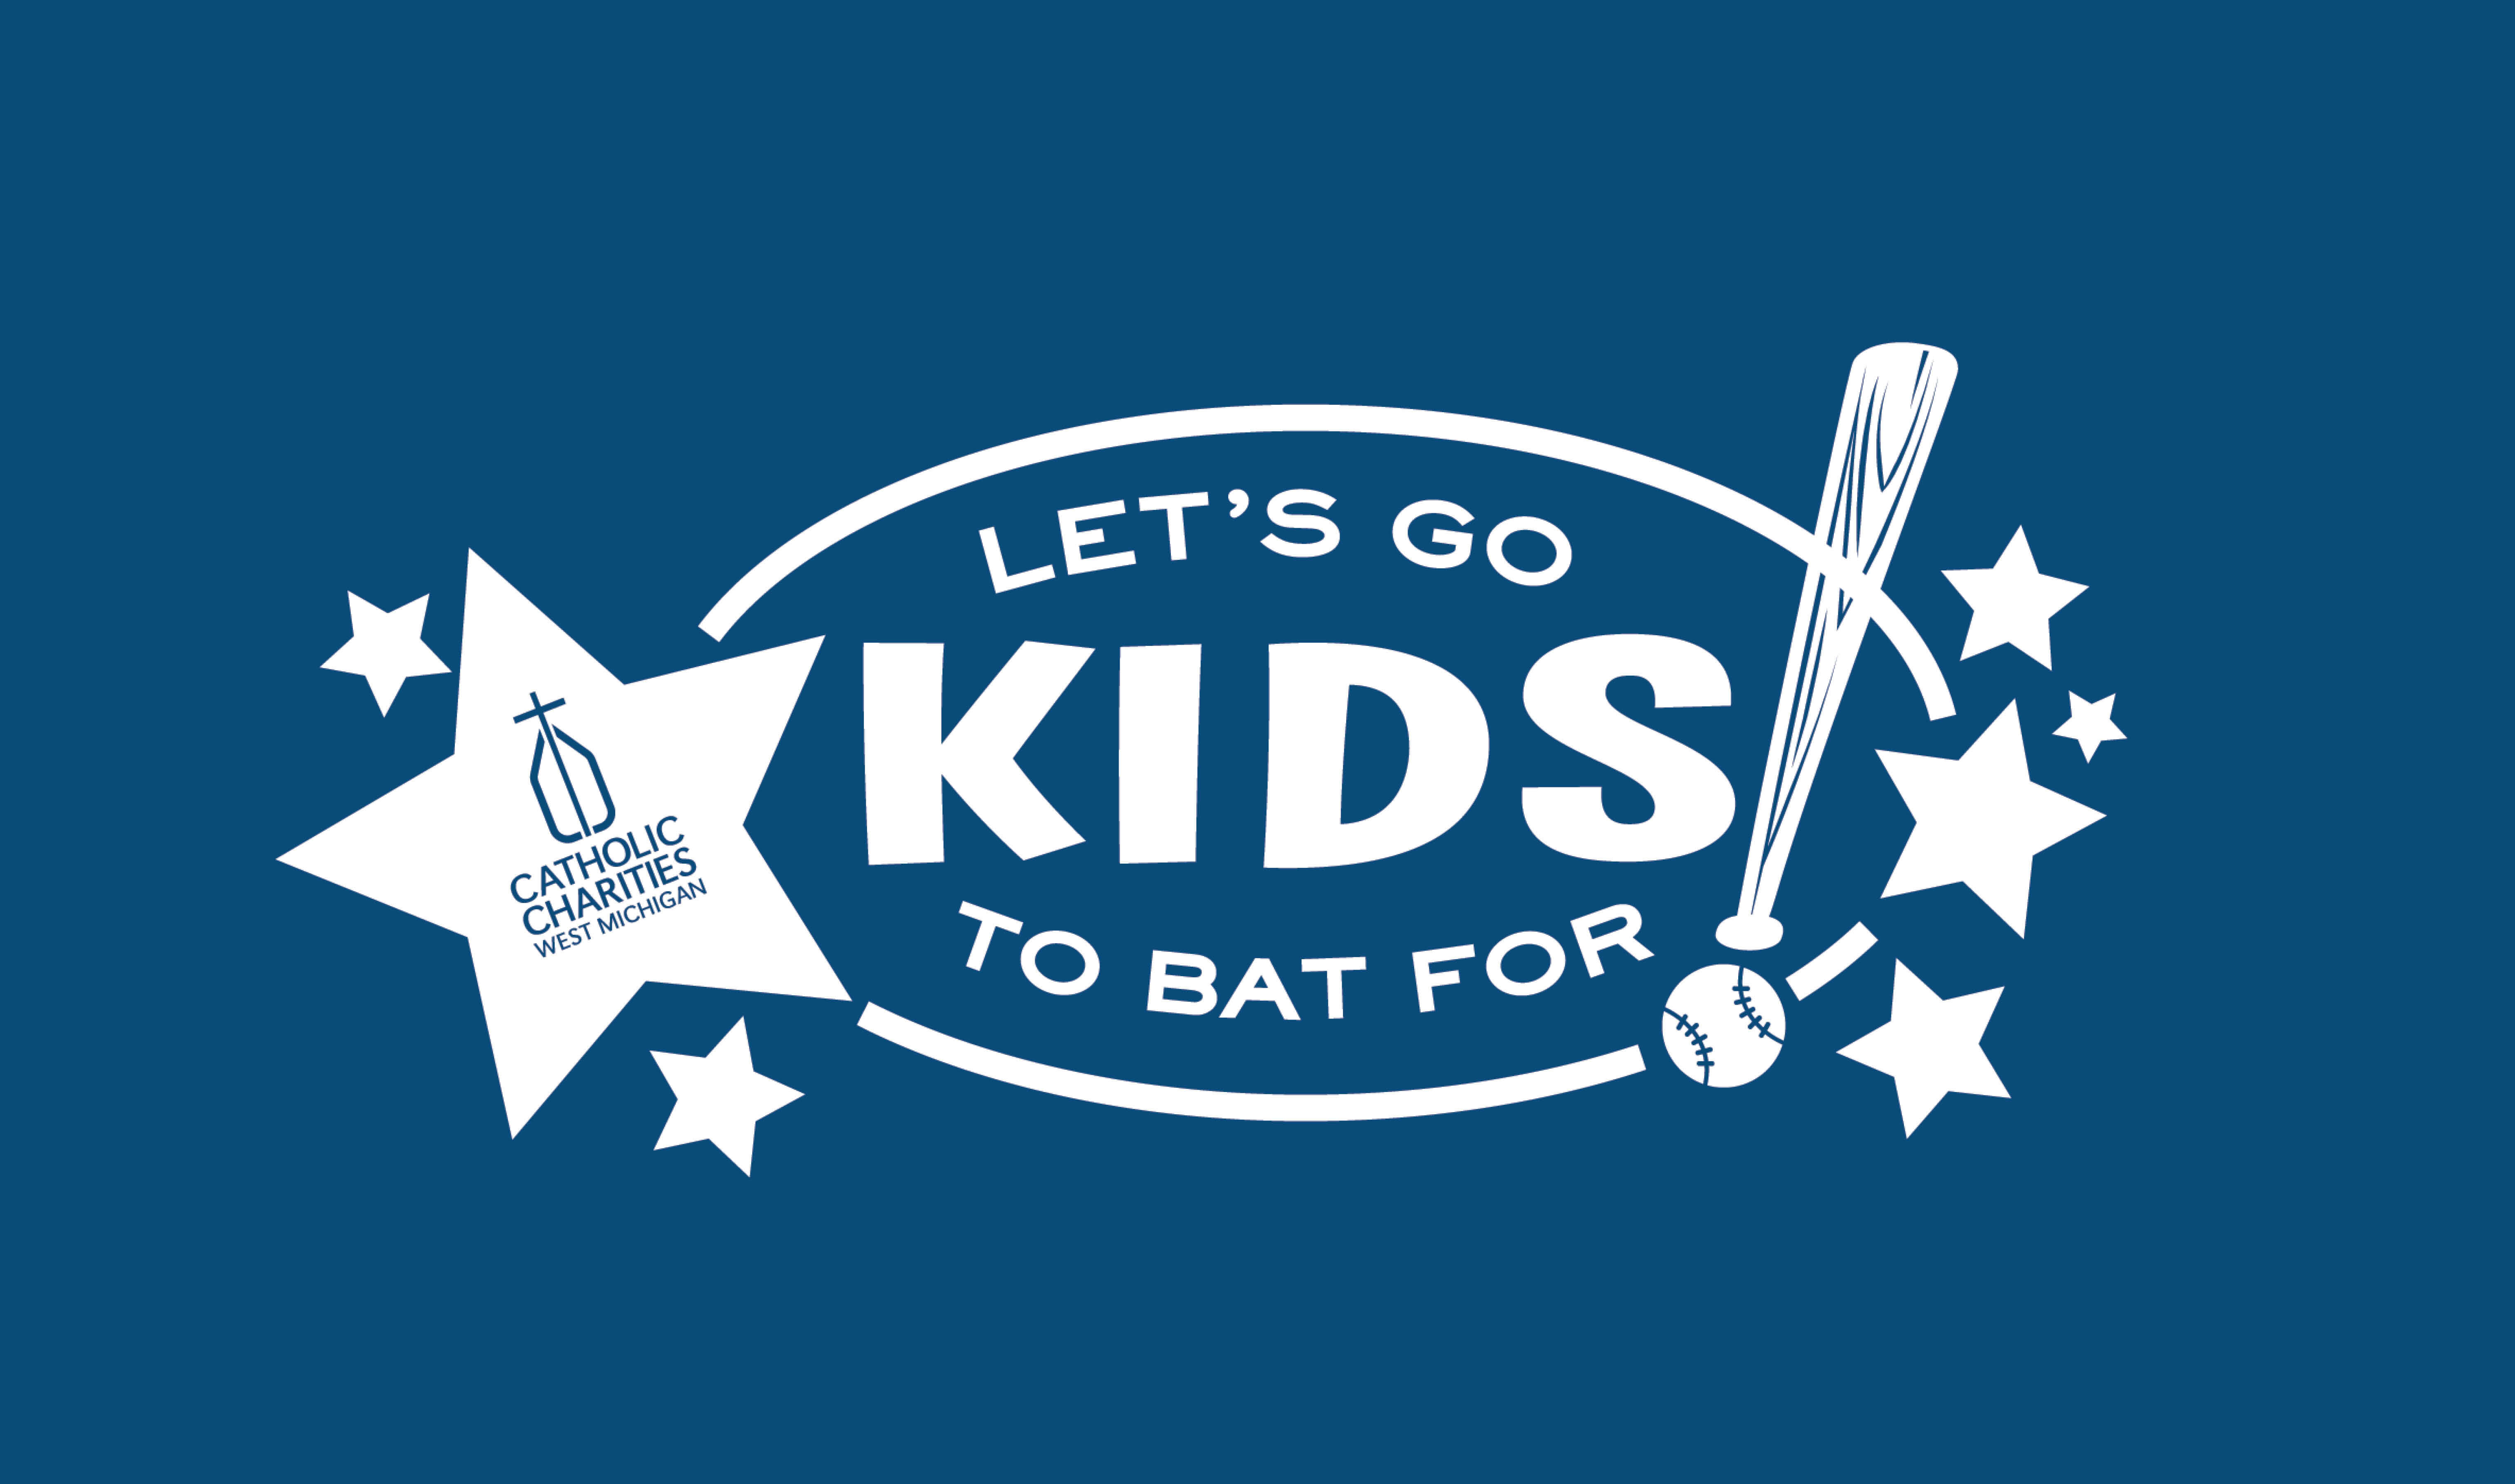 CCWM's Let's Go To Bat For Kids! logo